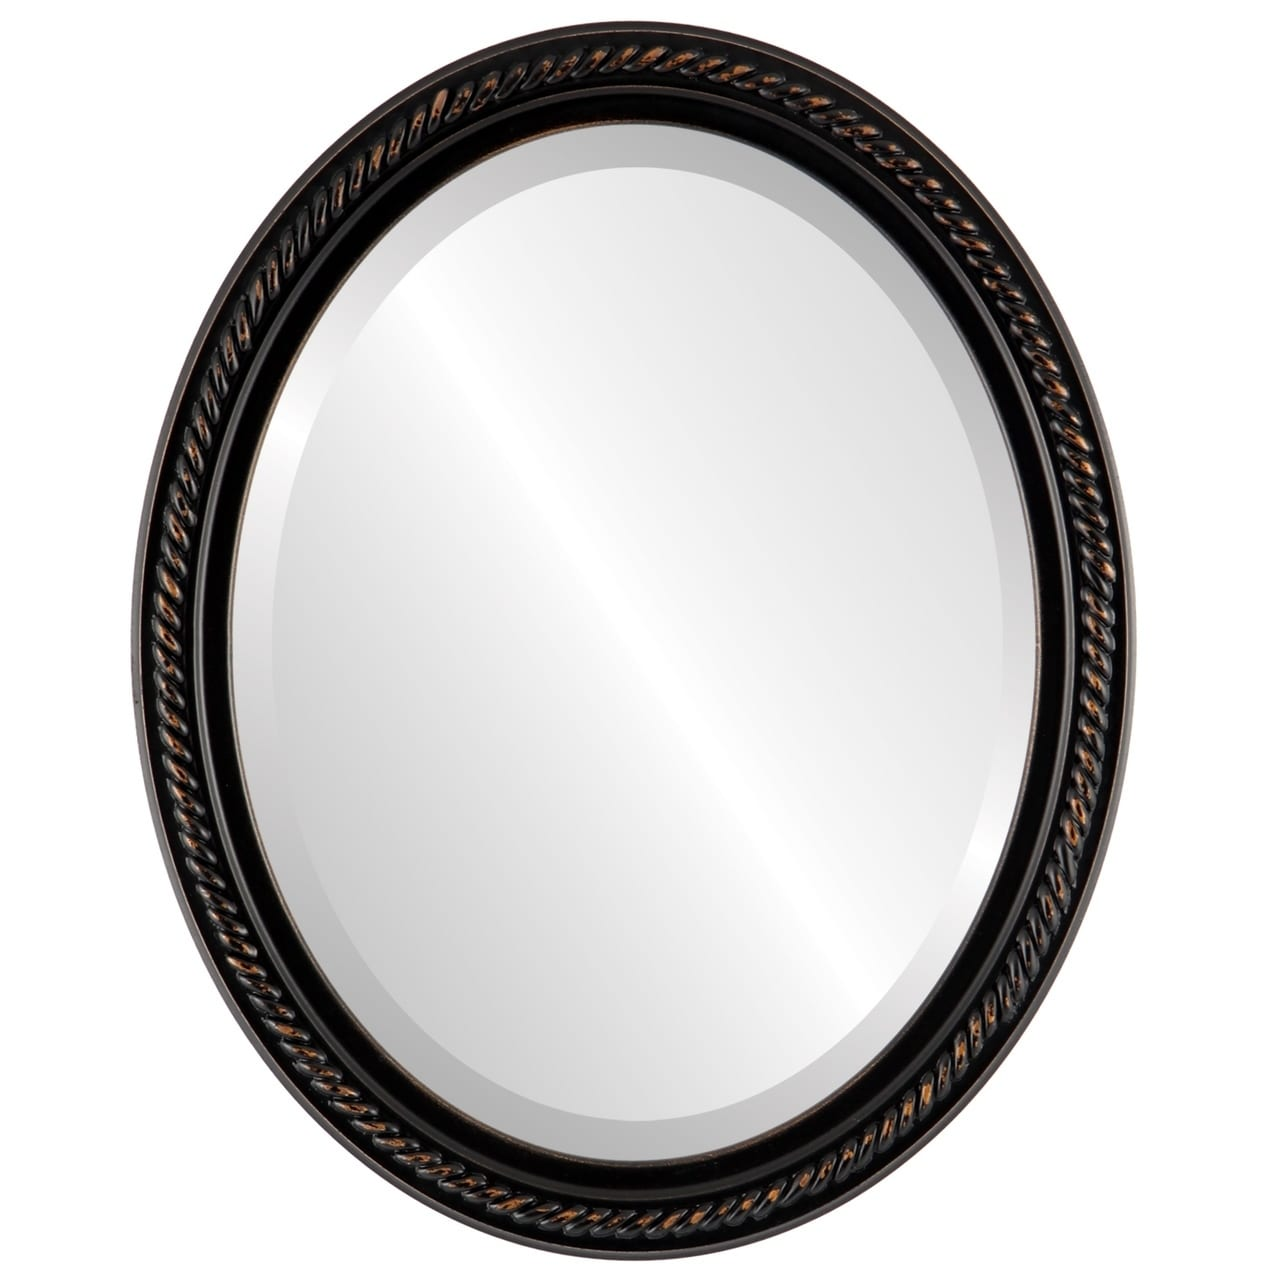 The Oval and Round Mirror Store Santa Fe Framed Oval Mirror in Rubbed Bronze Antique Bronze by Overstock